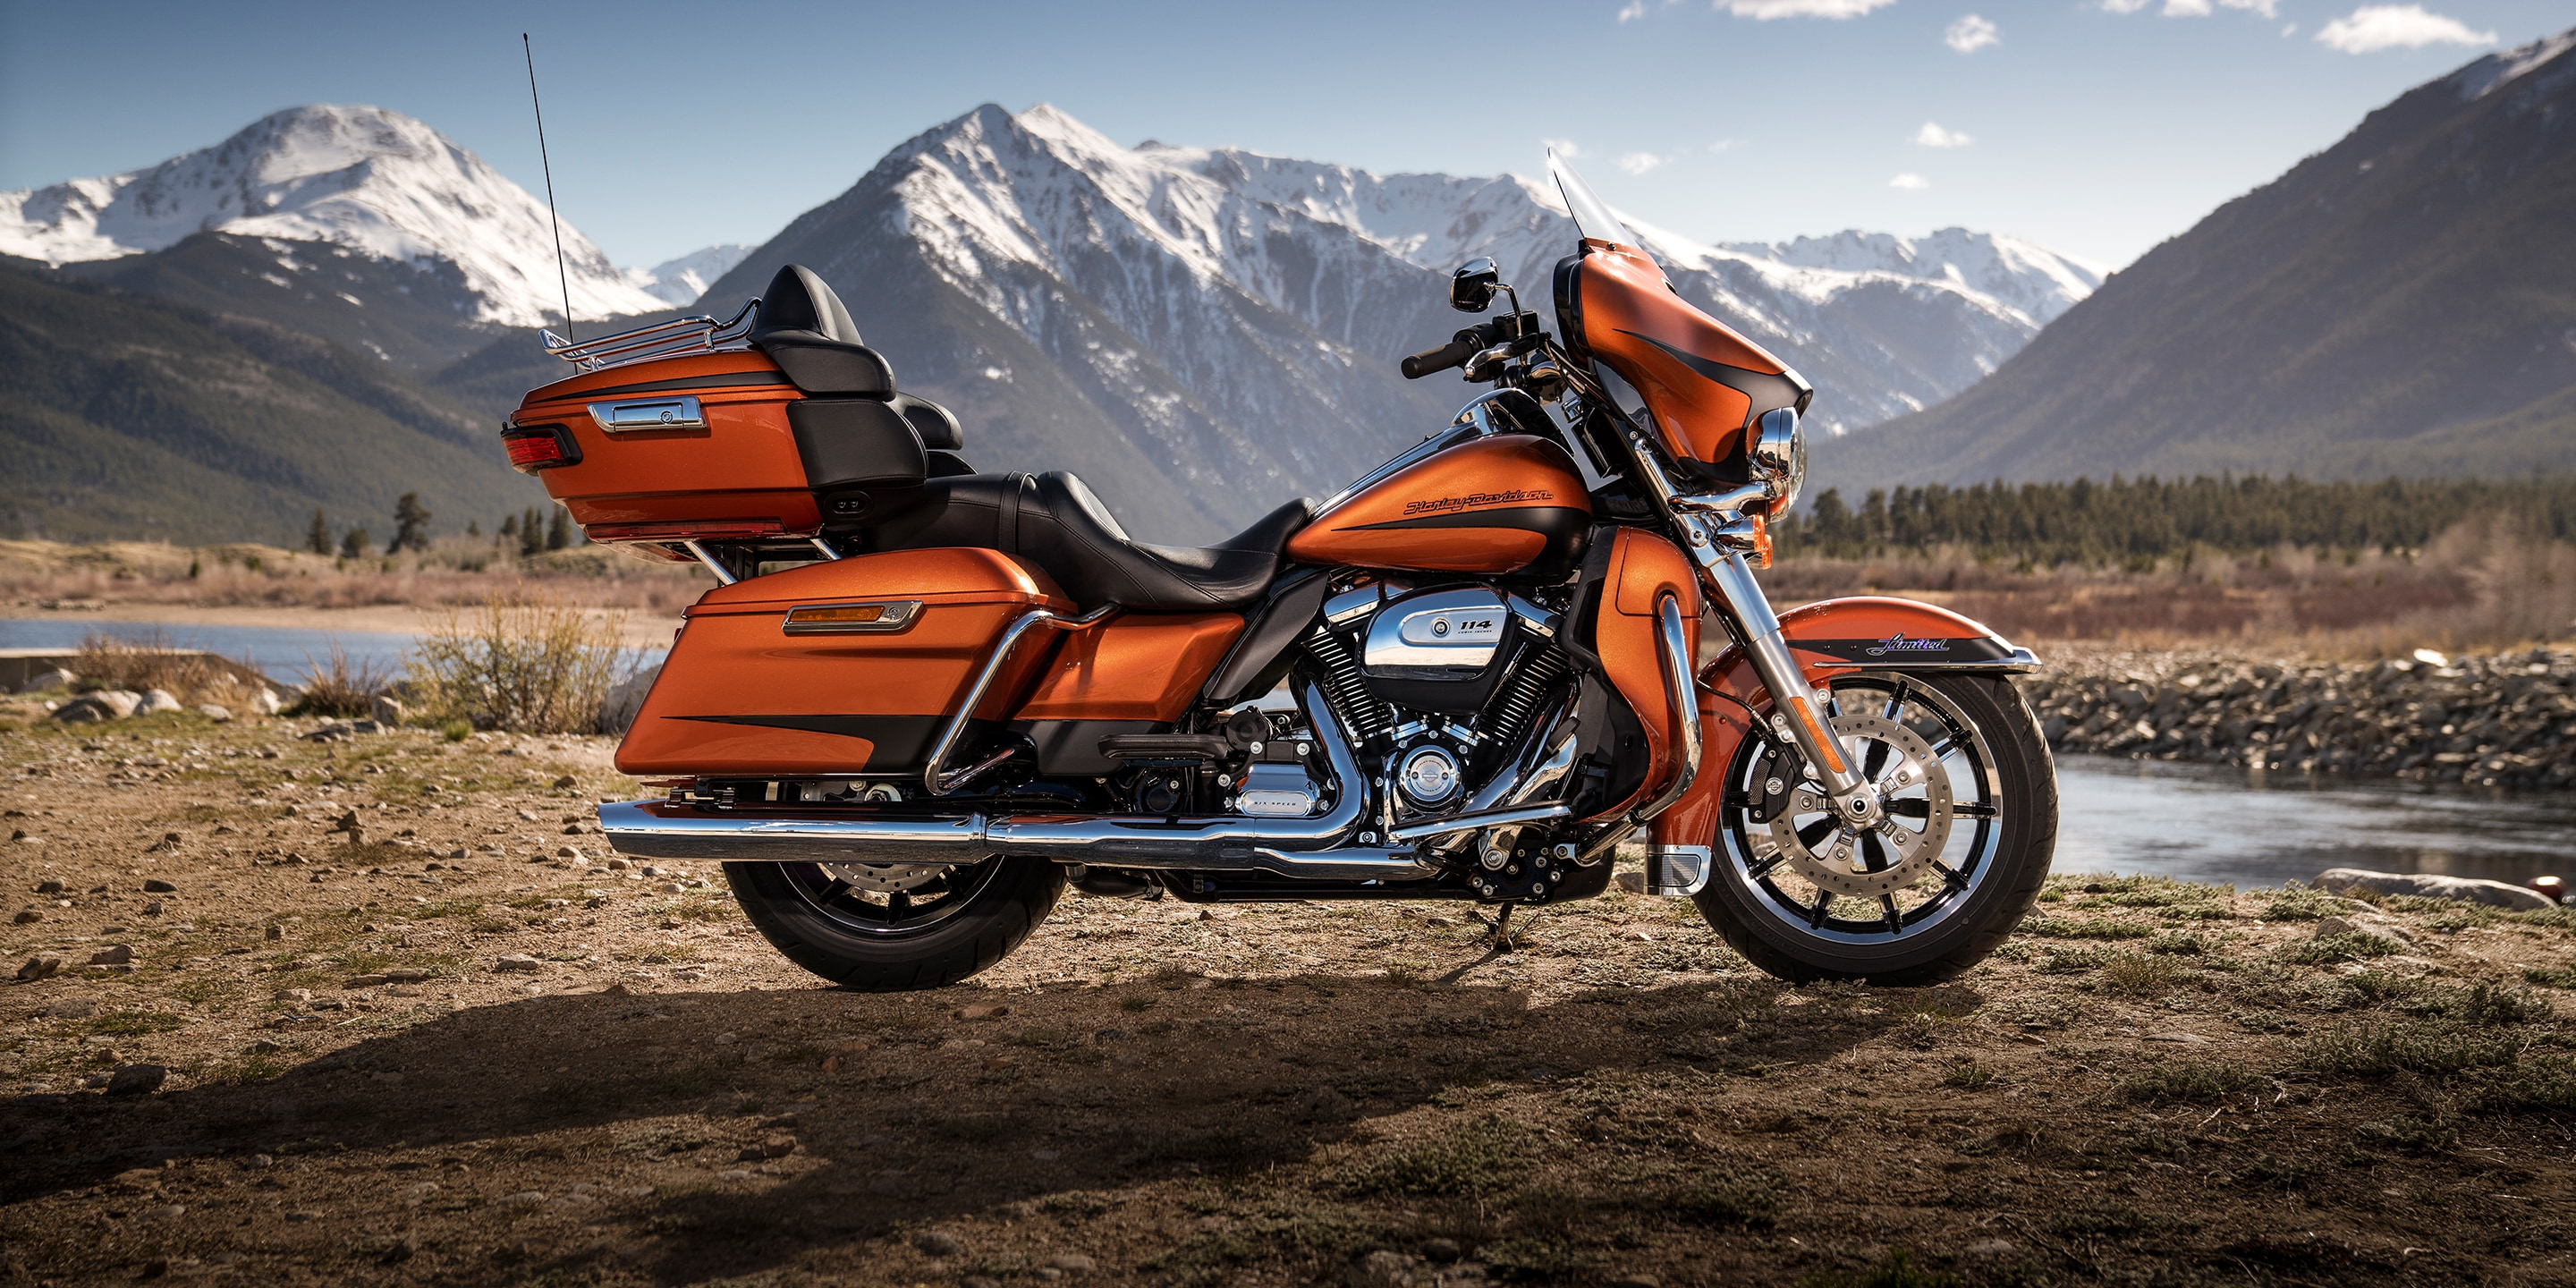 2019 Ultra Limited motorcycle parked by mountain scenery